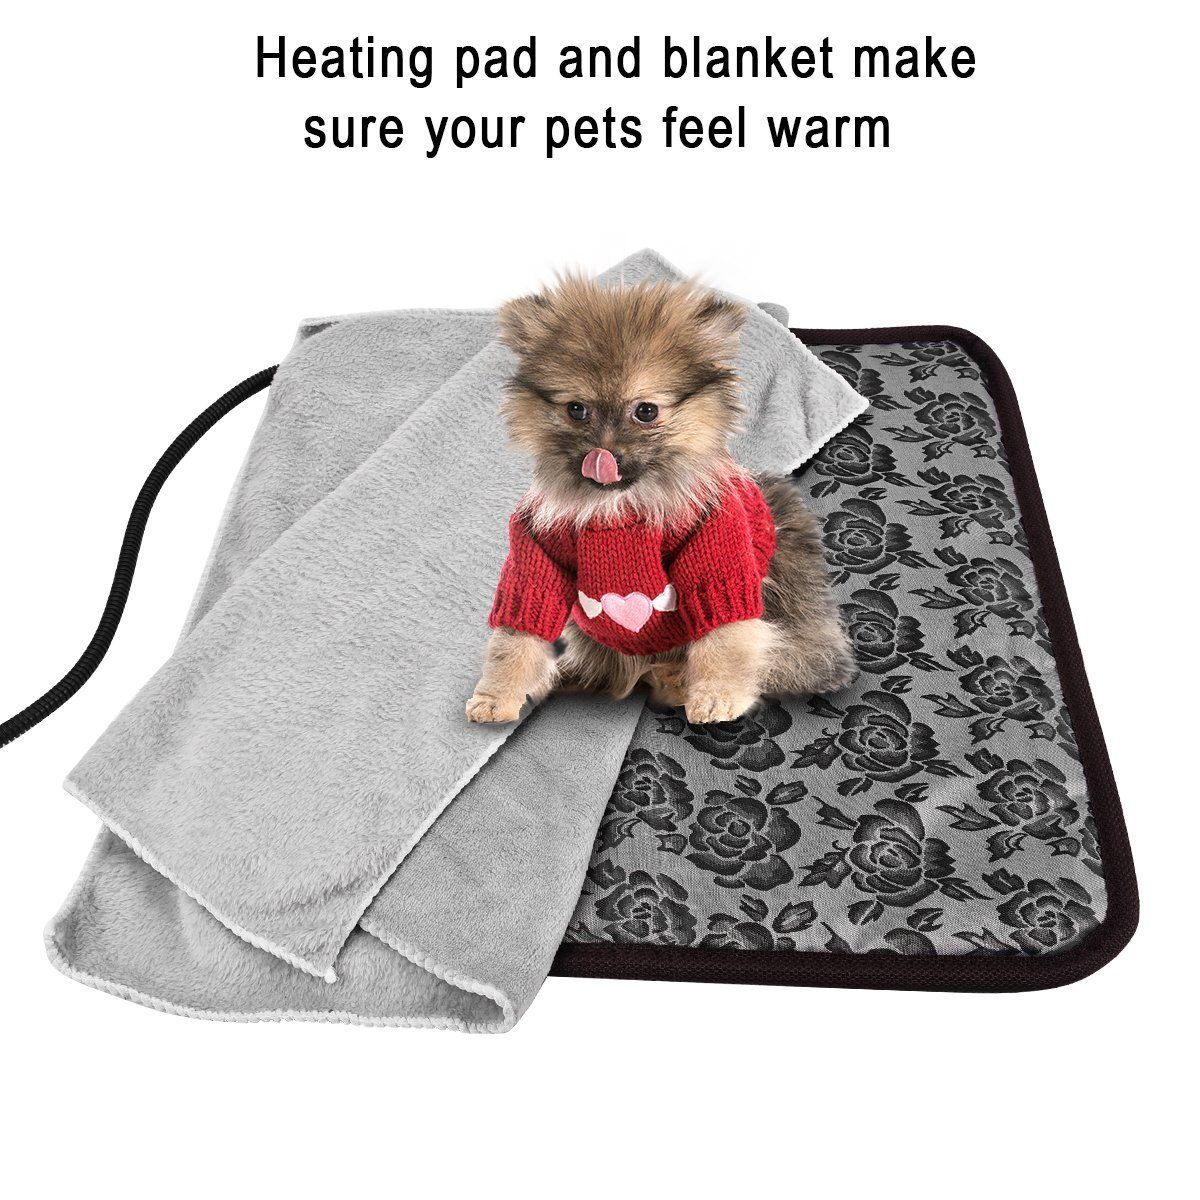 Pet heating pad ,Newroad waterproof warming mat with